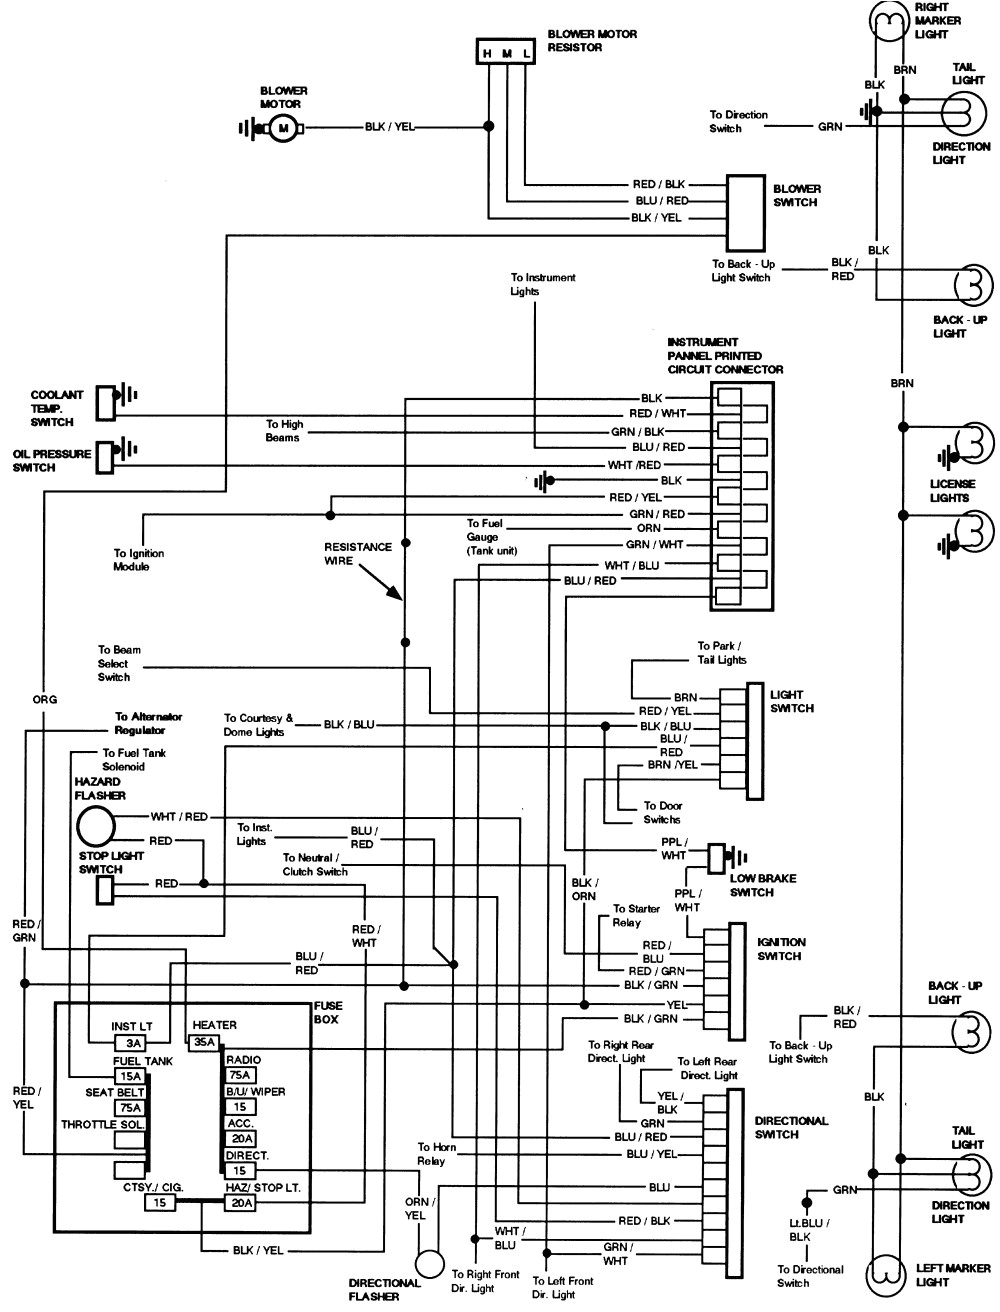 wiring diagram ford f150 headlights free download wiring diagram data 97 ford f 150 wiring diagram free